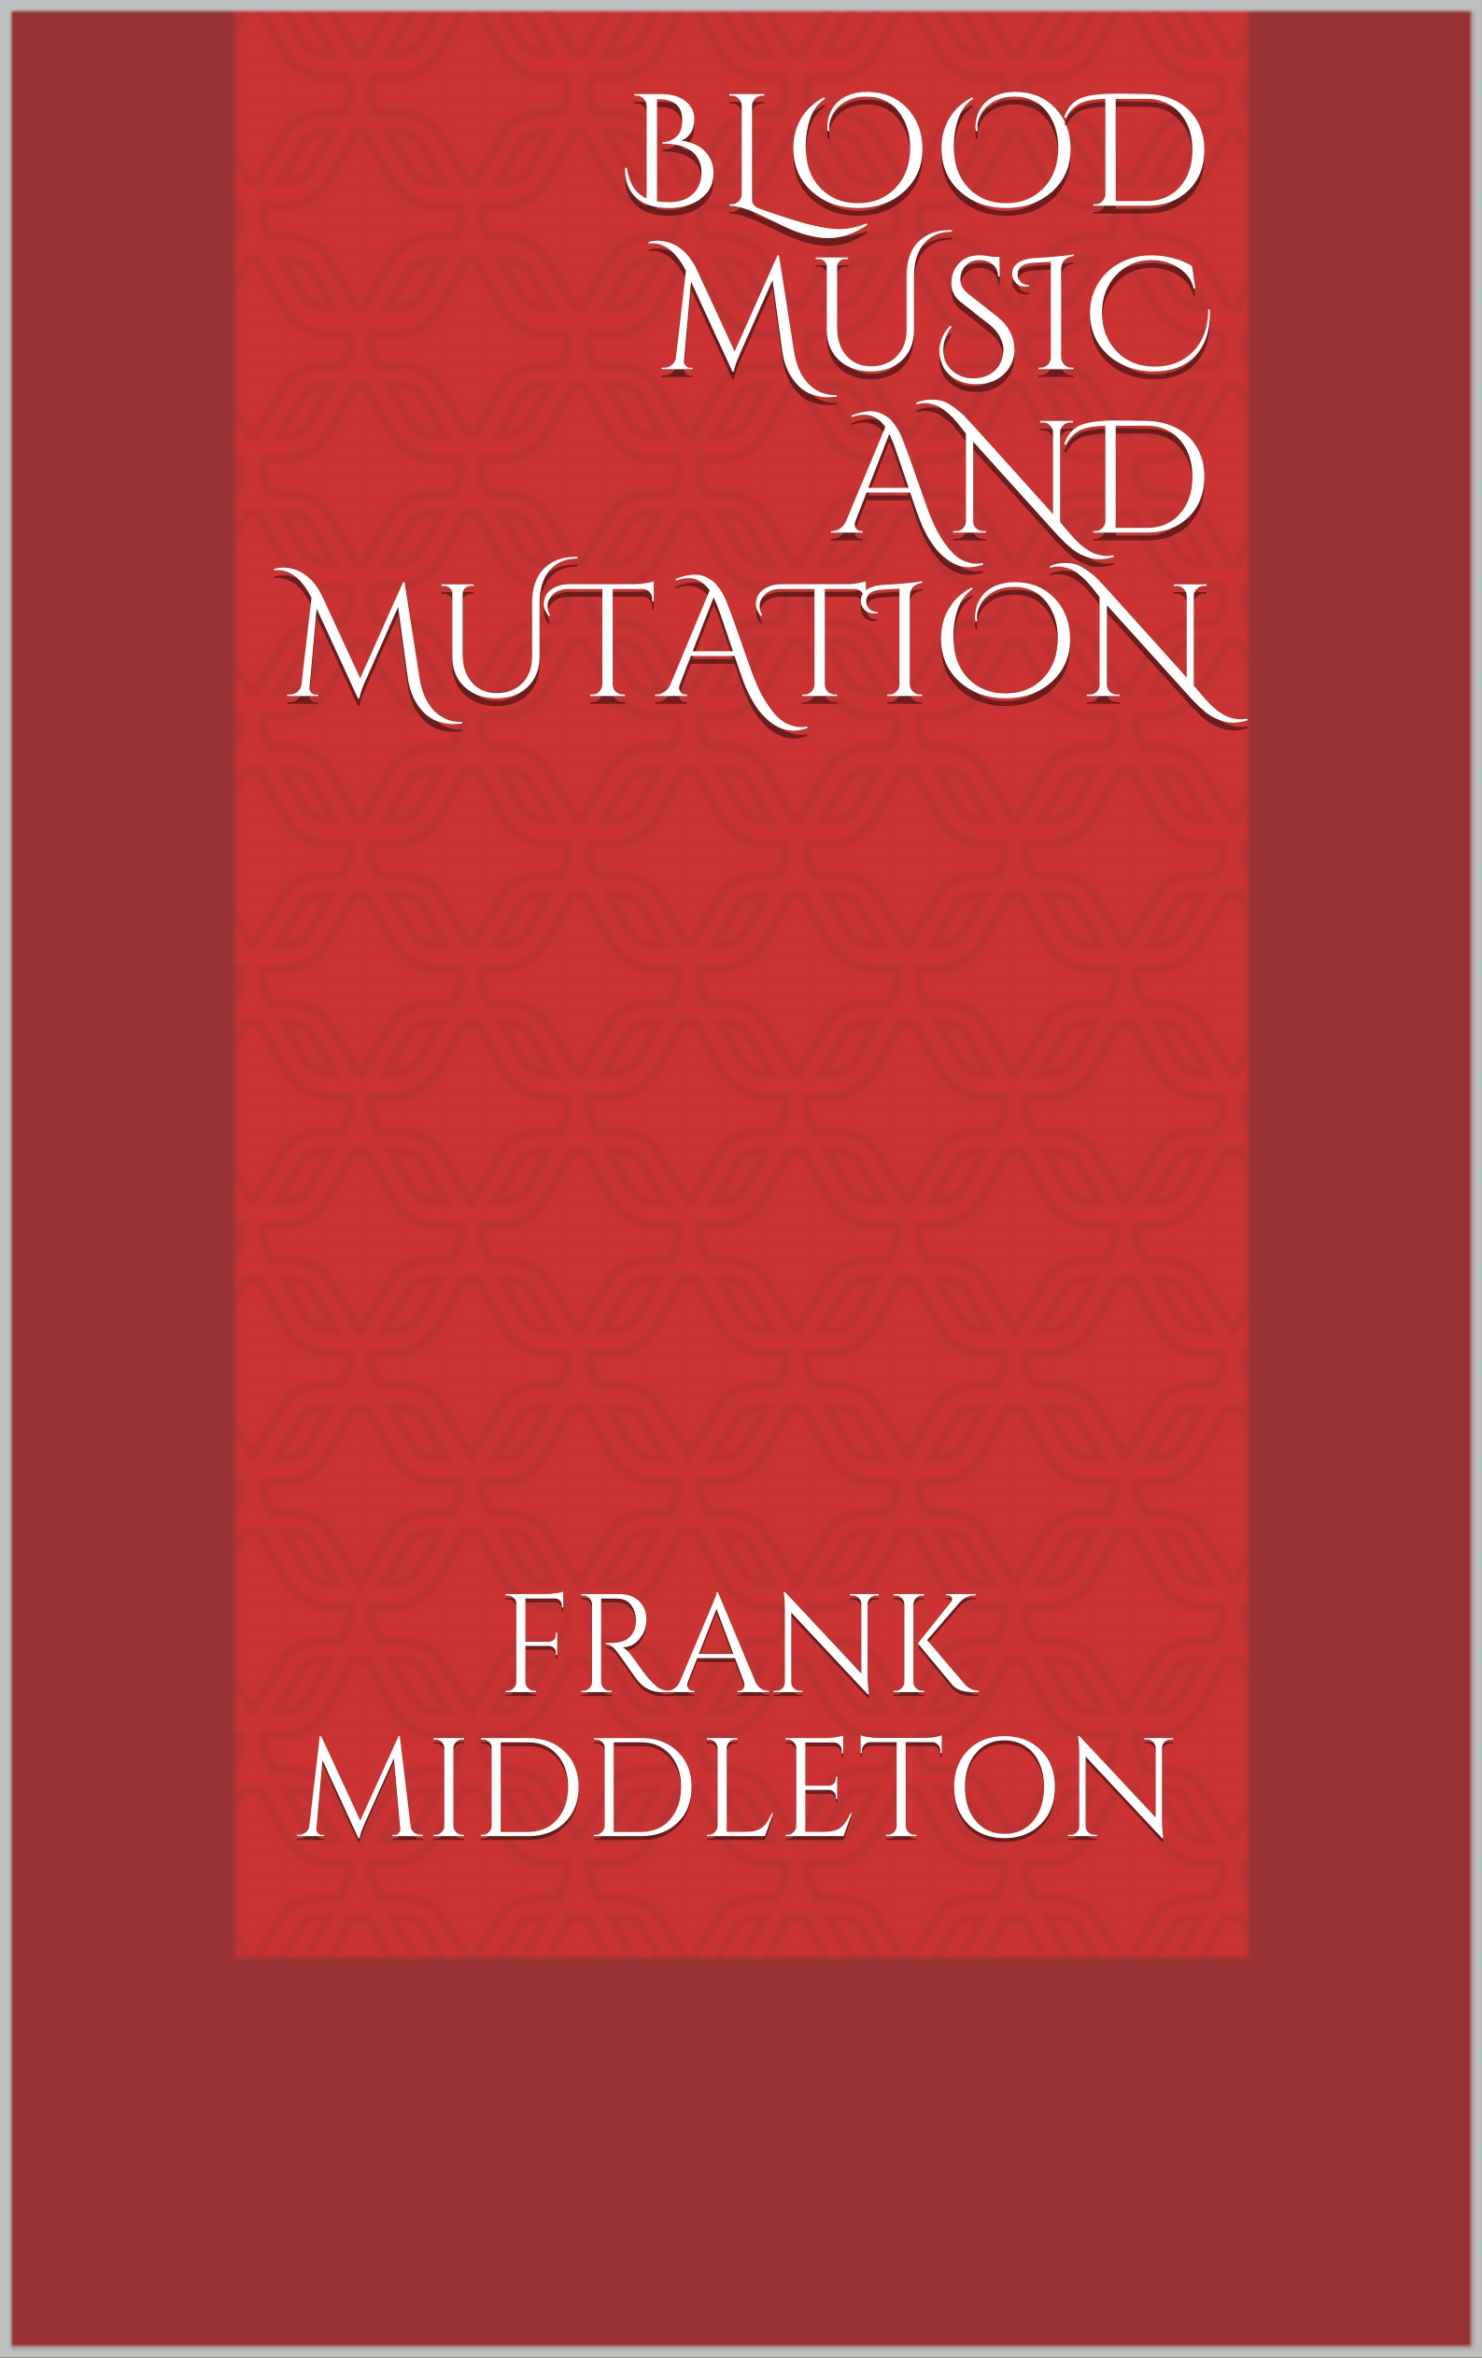 Blood Music and Mutation By Frank Middleton